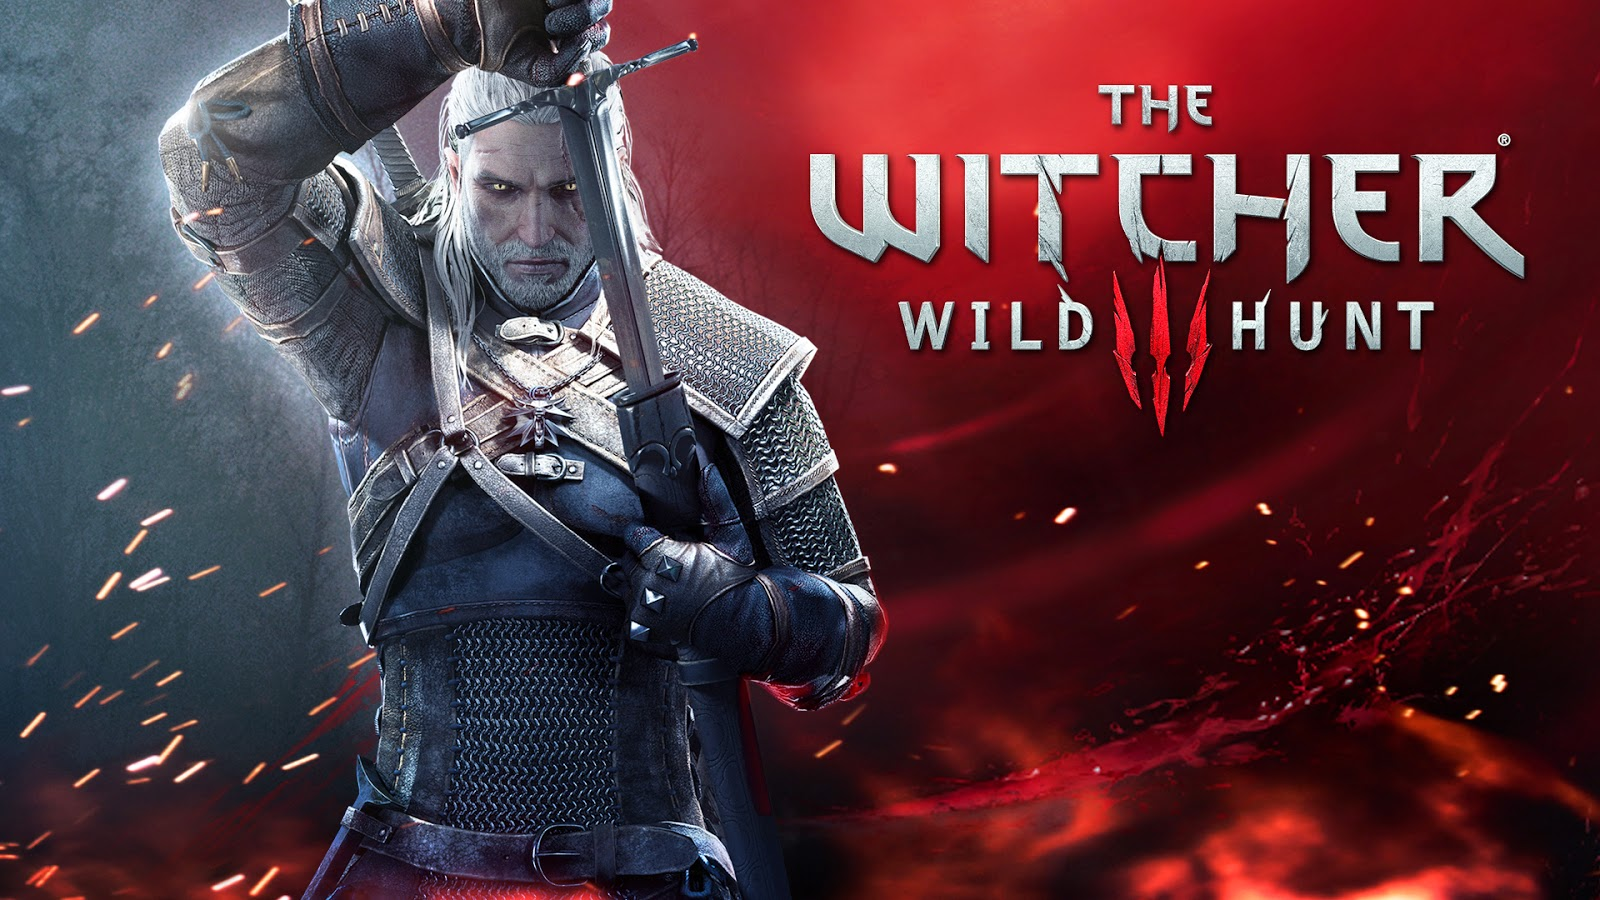 The Witcher 3 HD Wallpaper